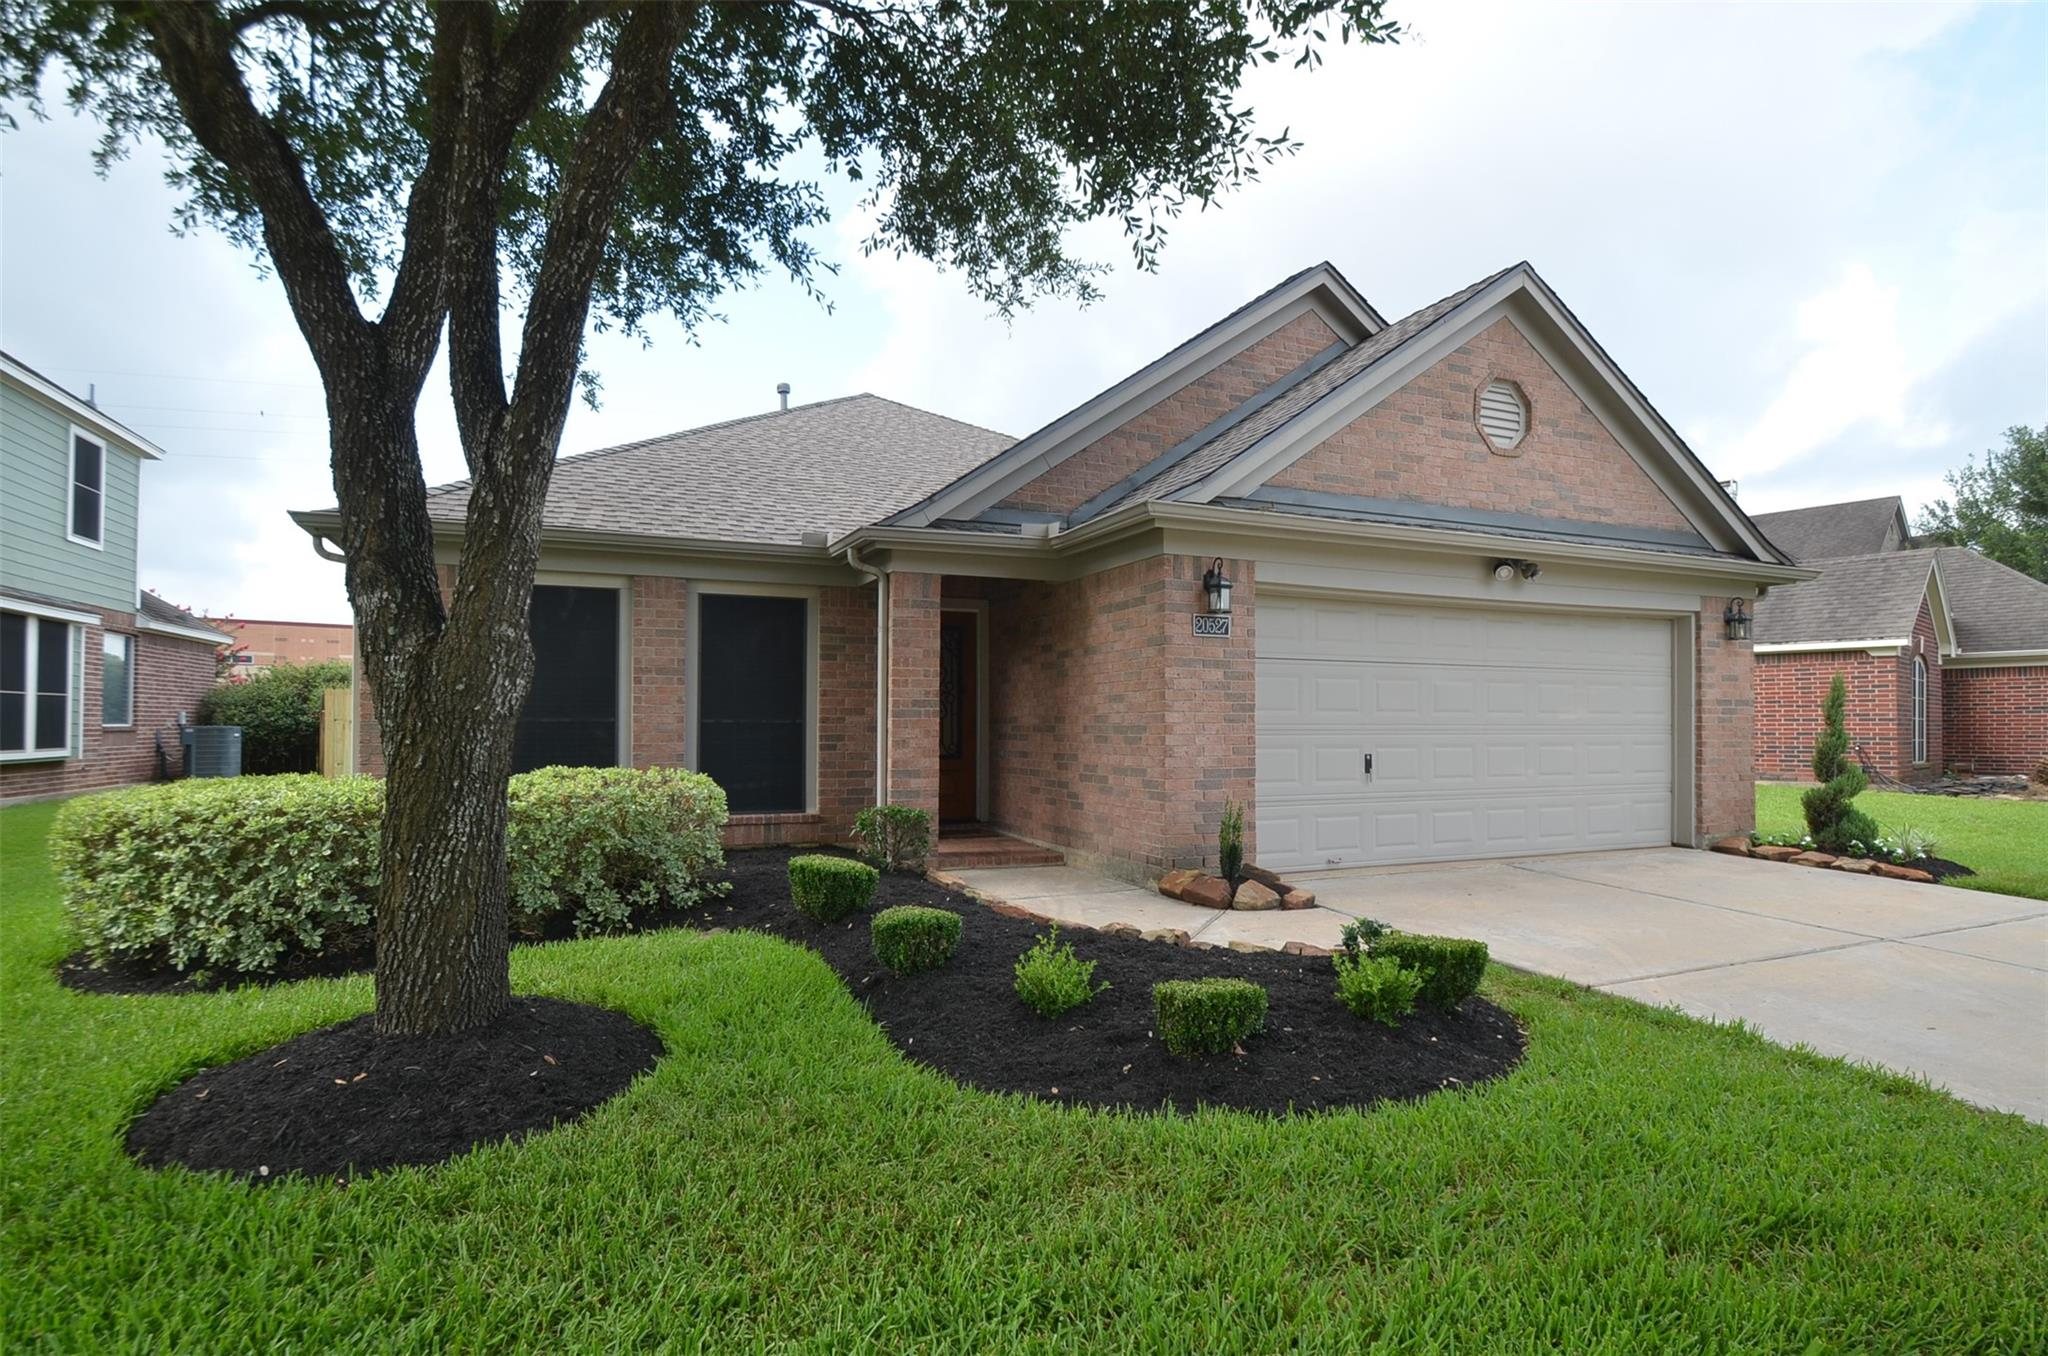 20527 Orchid Blossom Way Property Photo 1